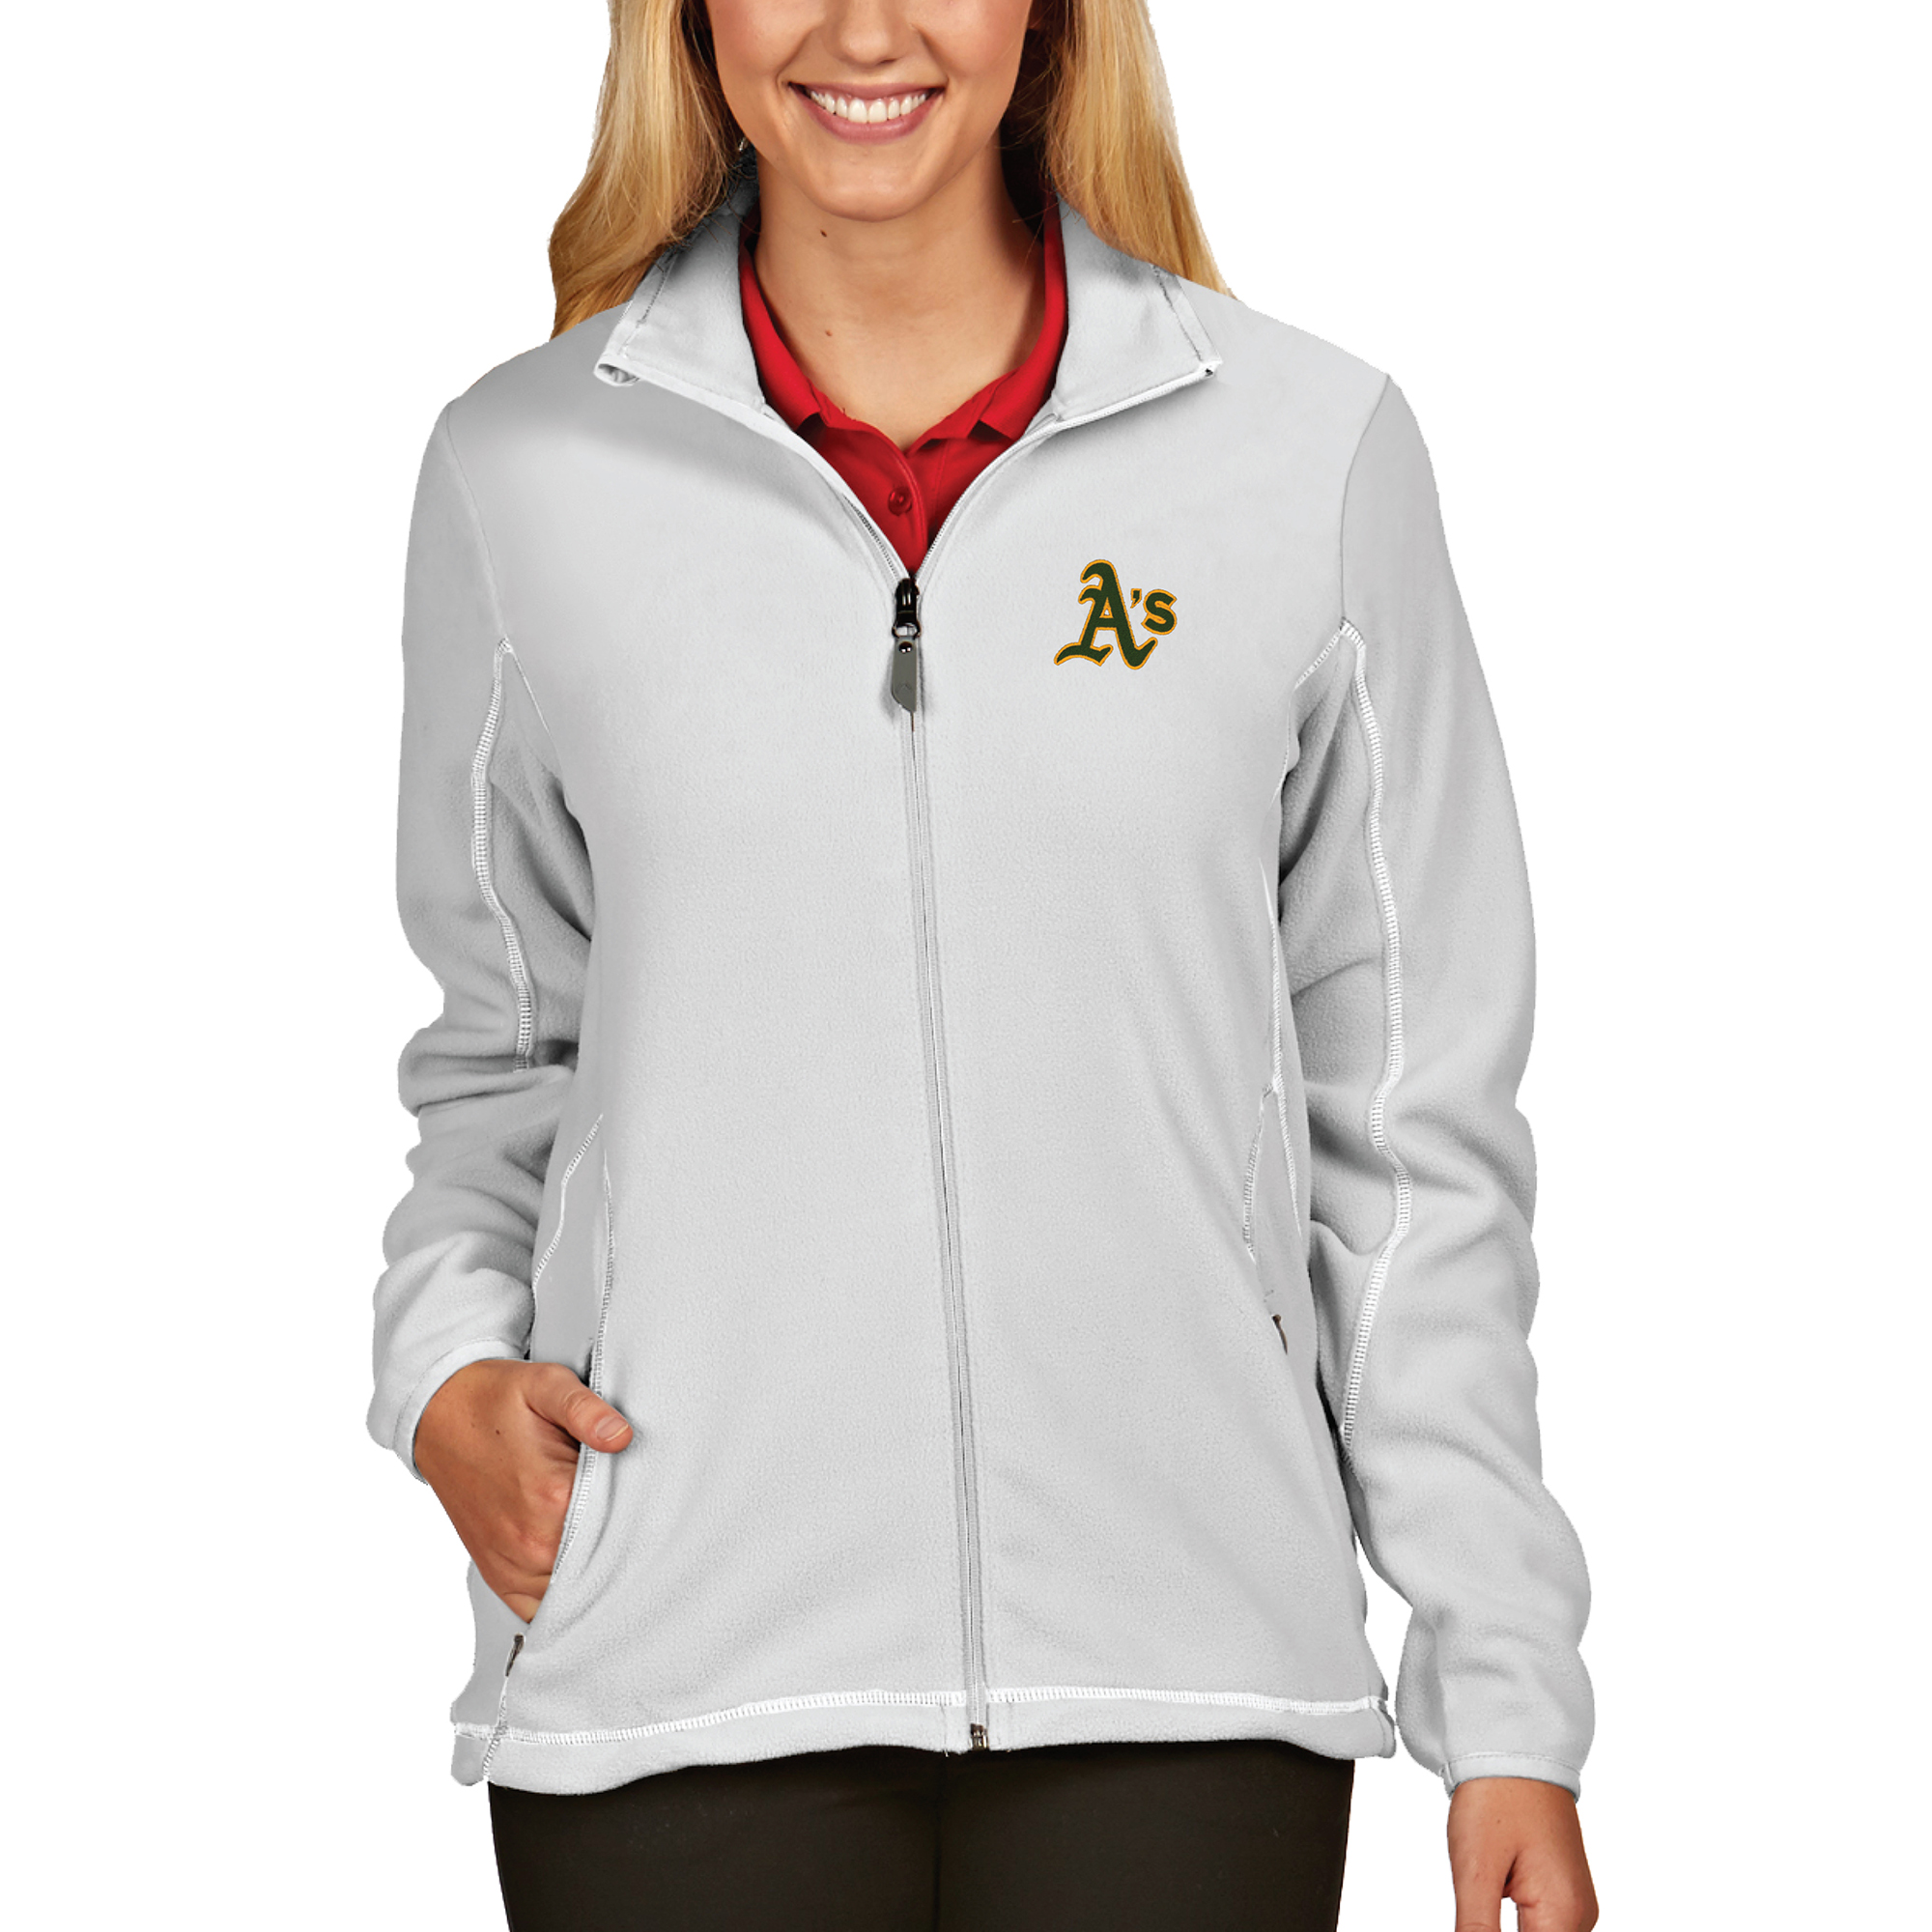 Oakland Athletics Antigua Women's Full Zip Ice Jacket - White